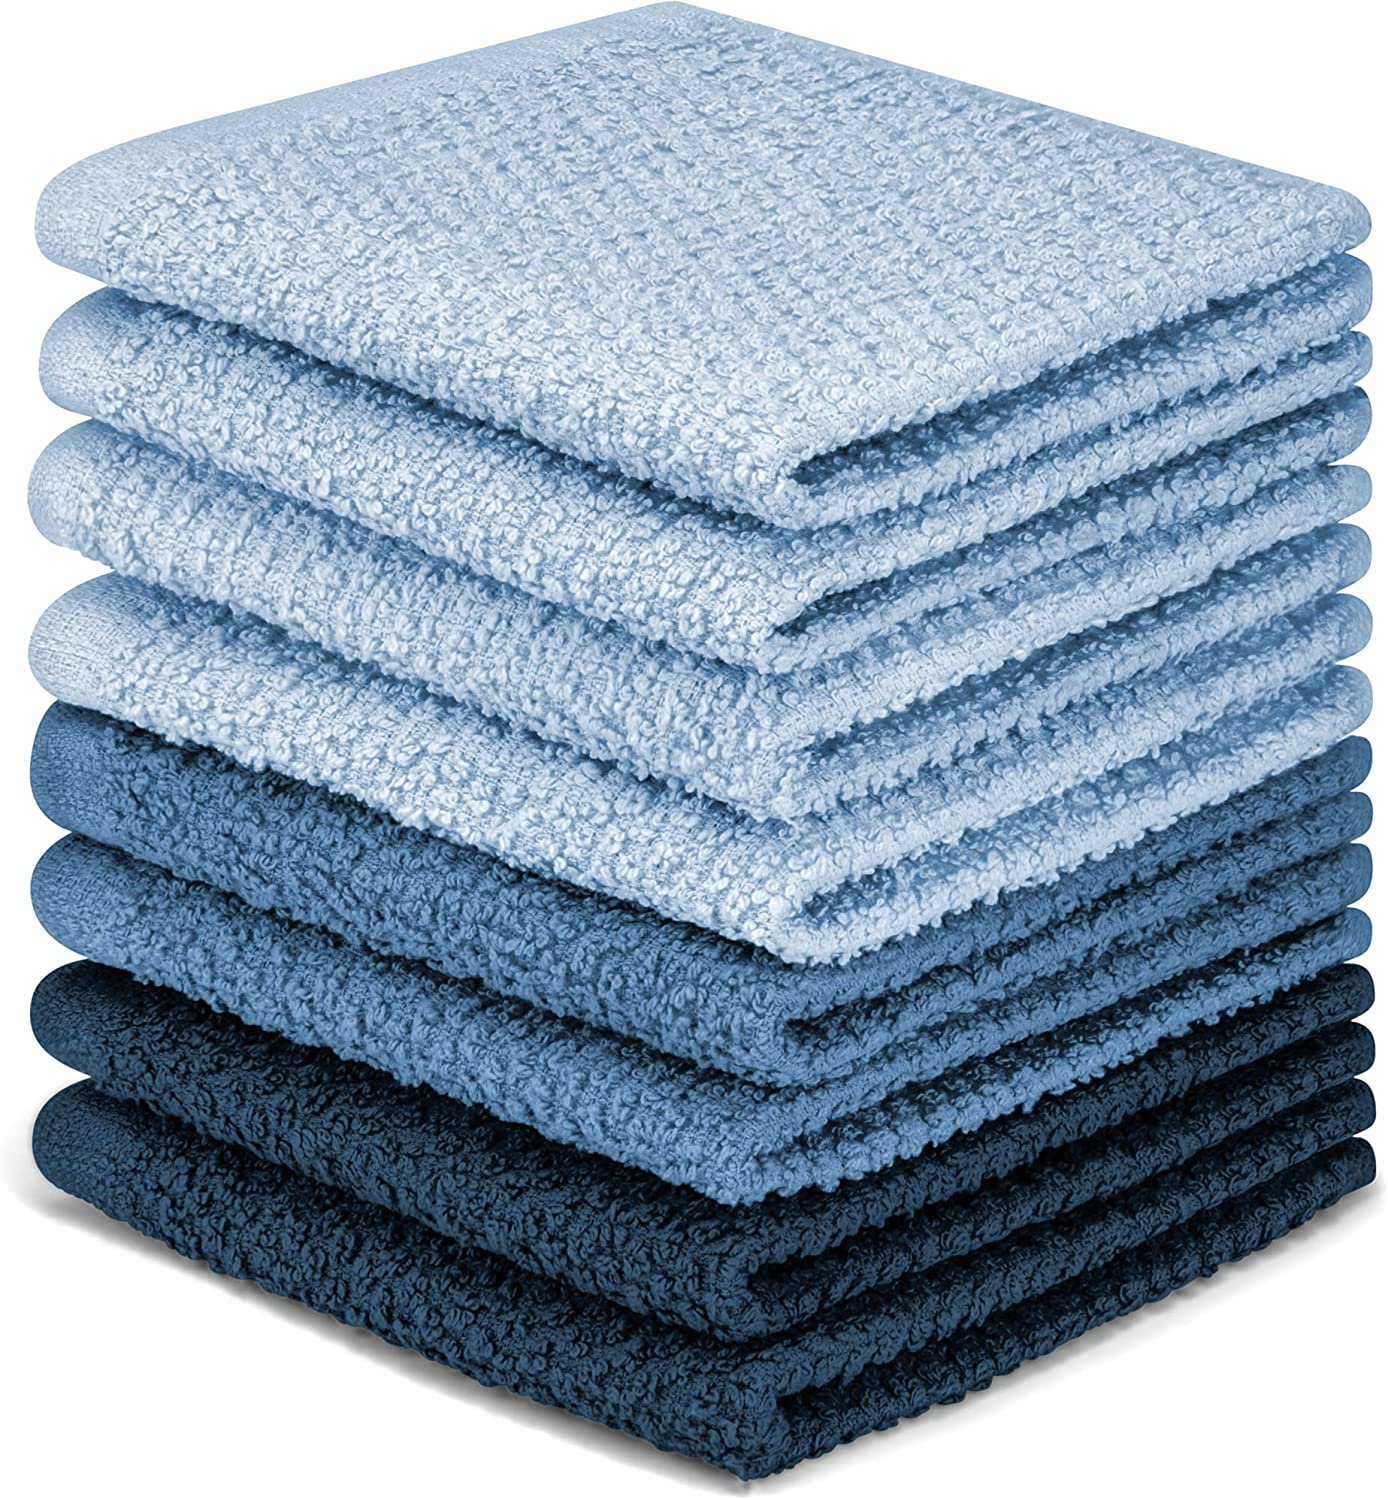 DecorRack 8 Pack Kitchen Dish Towels, 100% Cotton Wash Cloth, Luxurious Soft, 12x12 inch Ultra Absorbent, Machine Washable Washcloths, Blue (8 Pack)